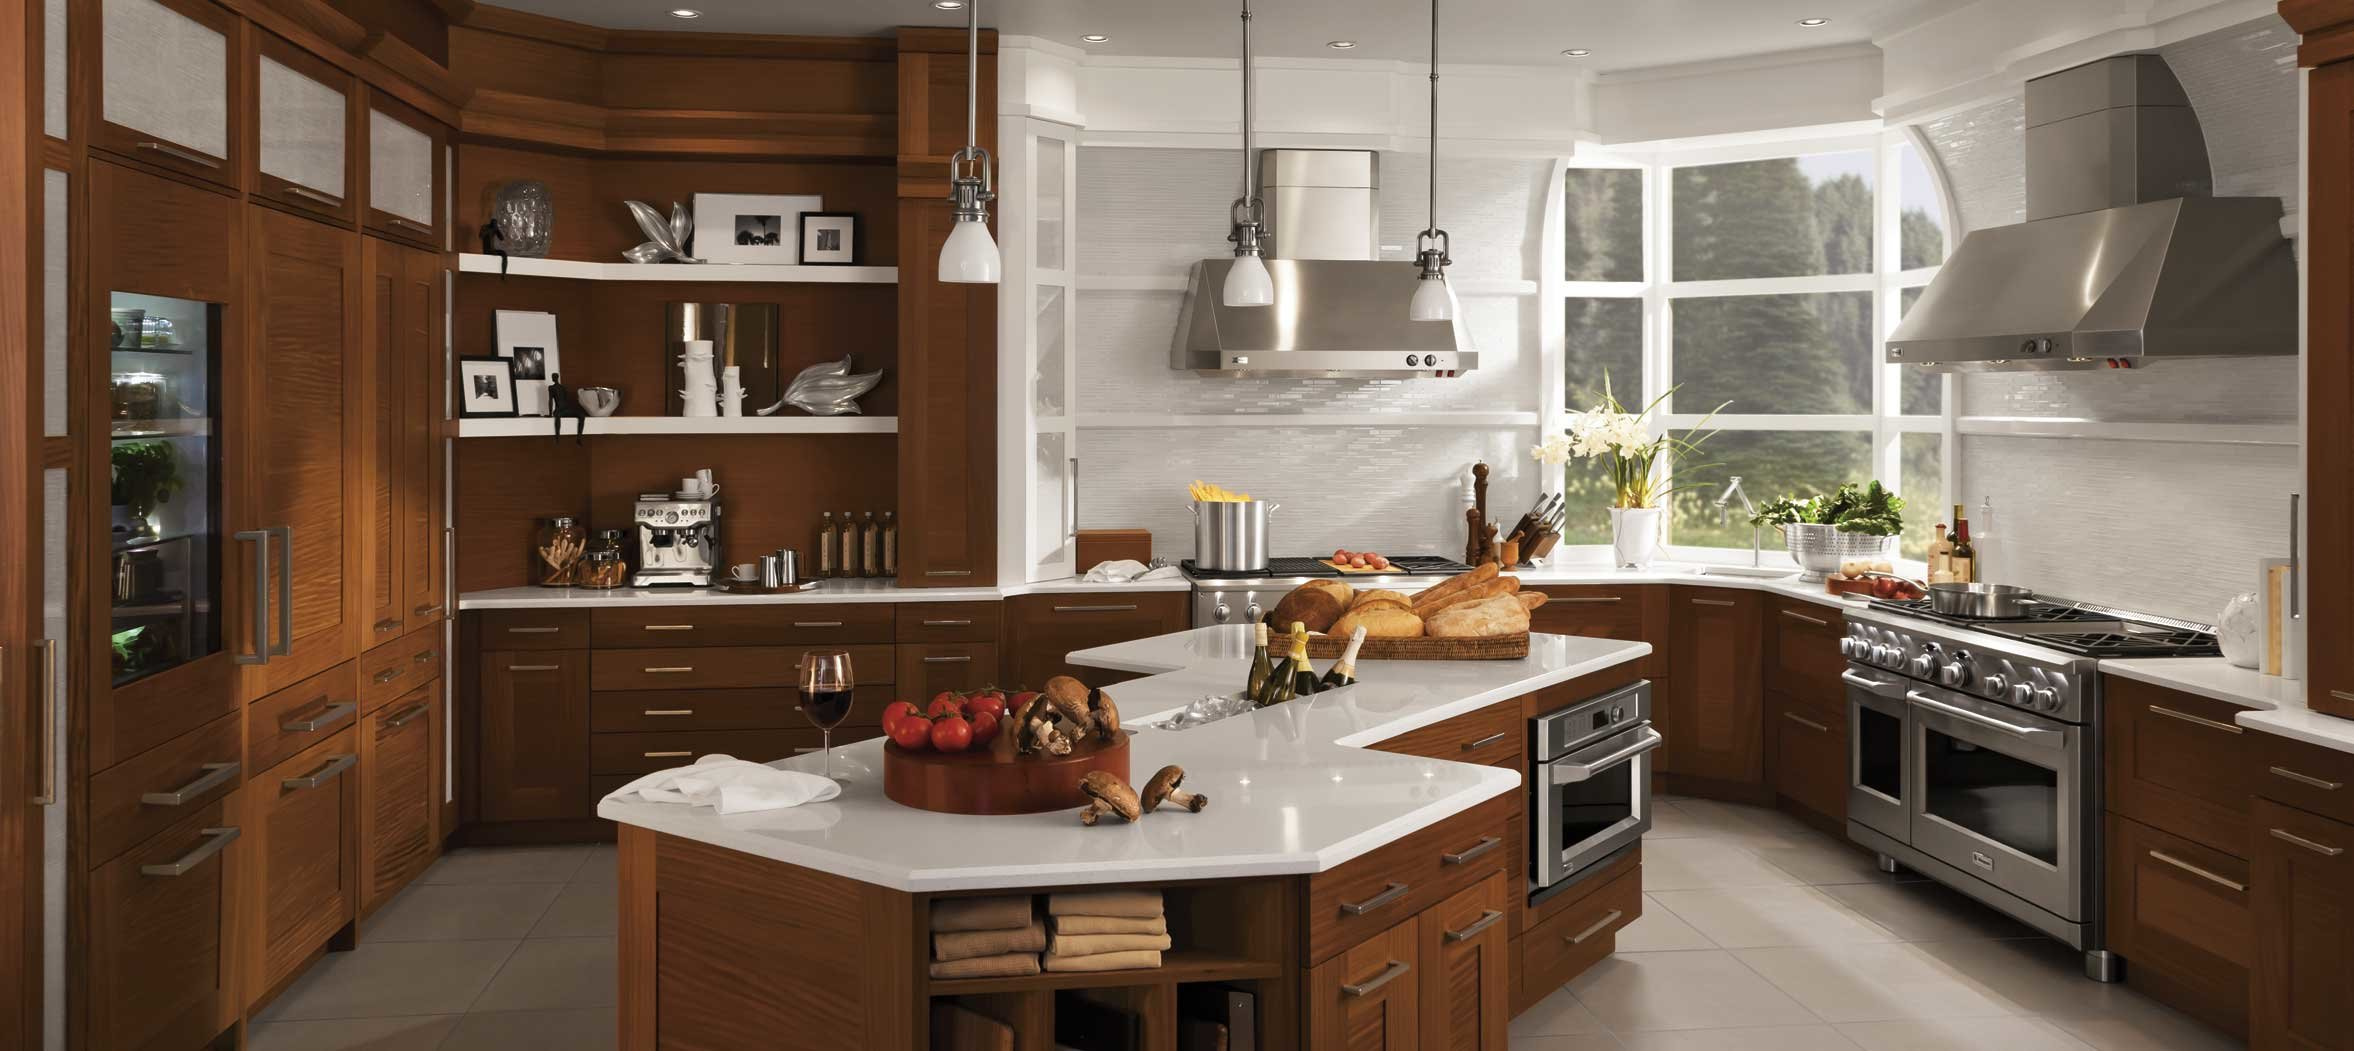 A bright, transitional kitchen designed around a Monogram range.